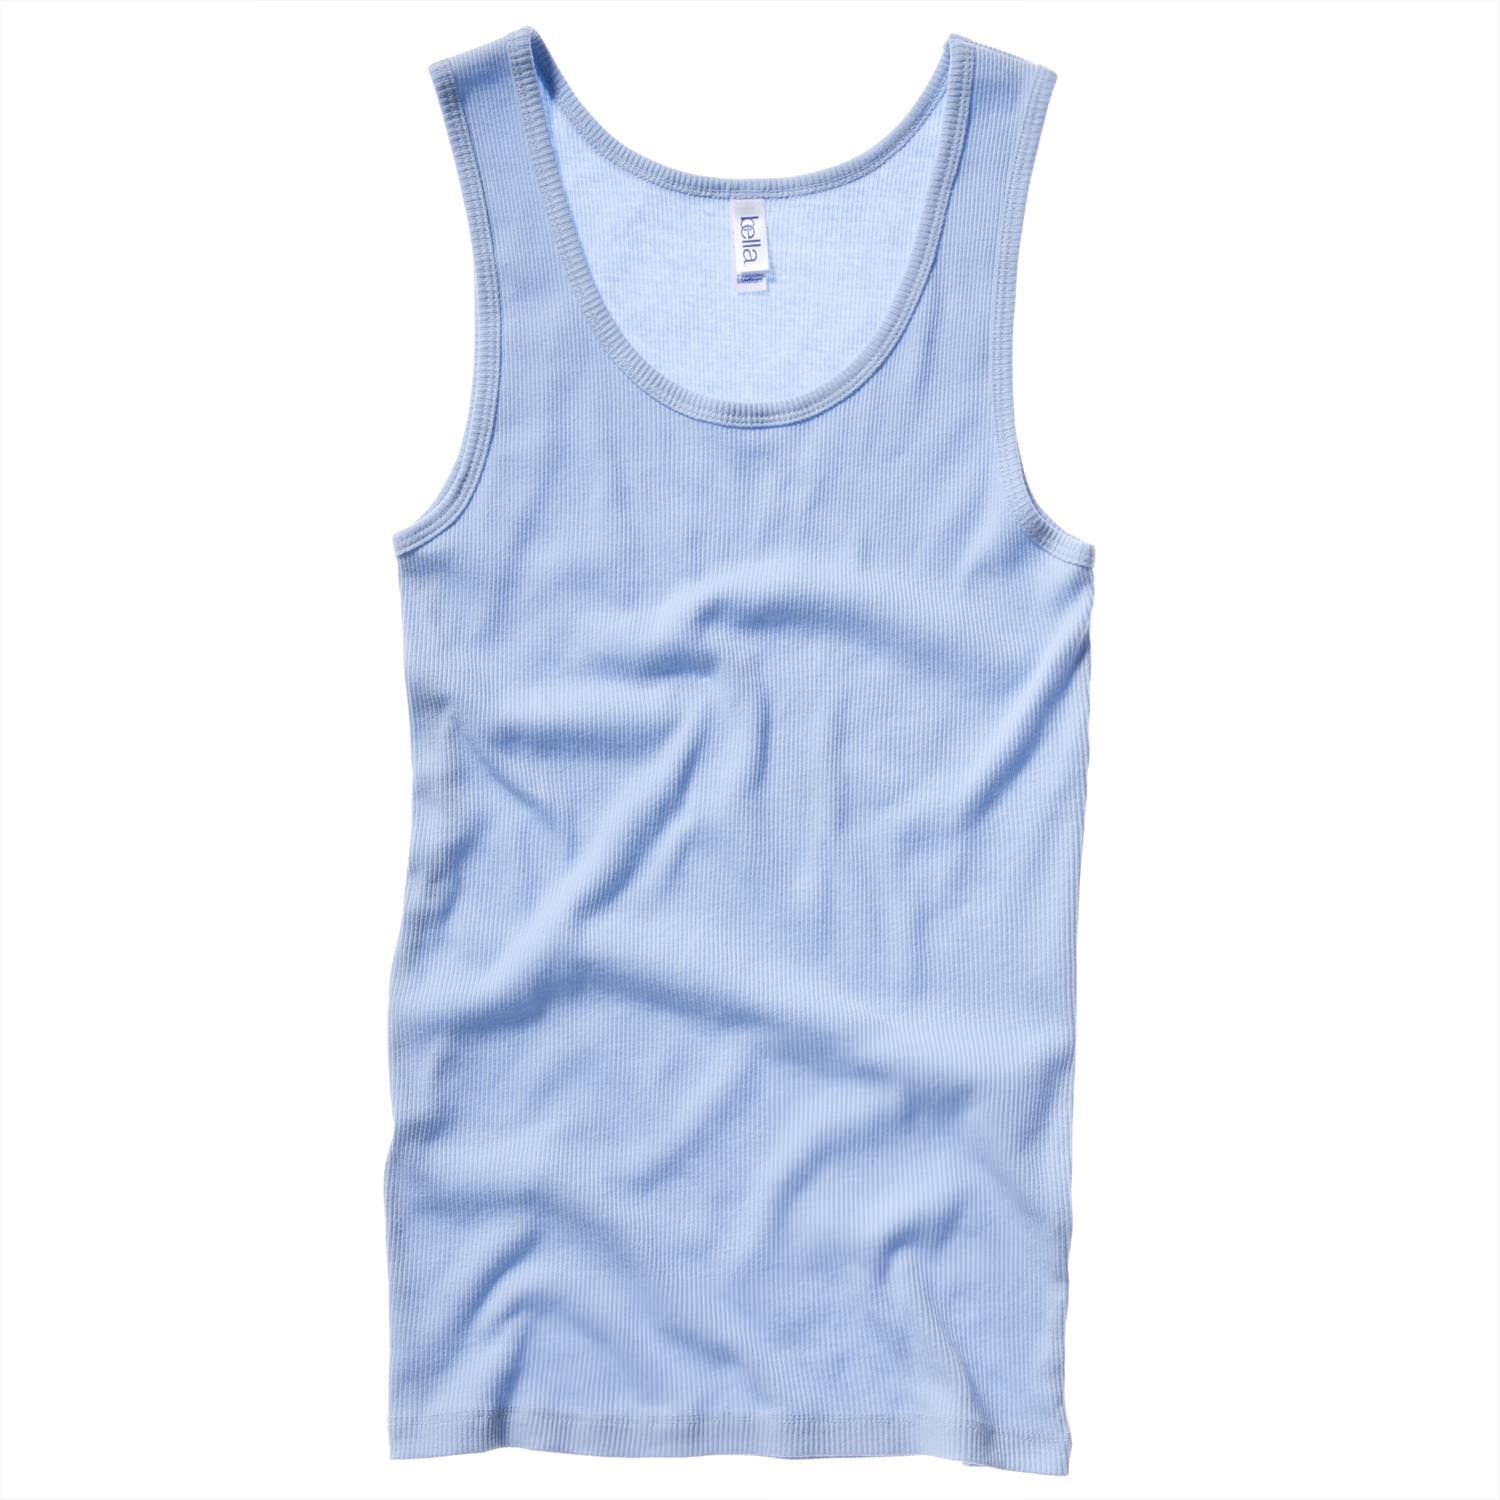 Bella Lienzo 2 x 1 RIB TANK TOP Bella + Canvas